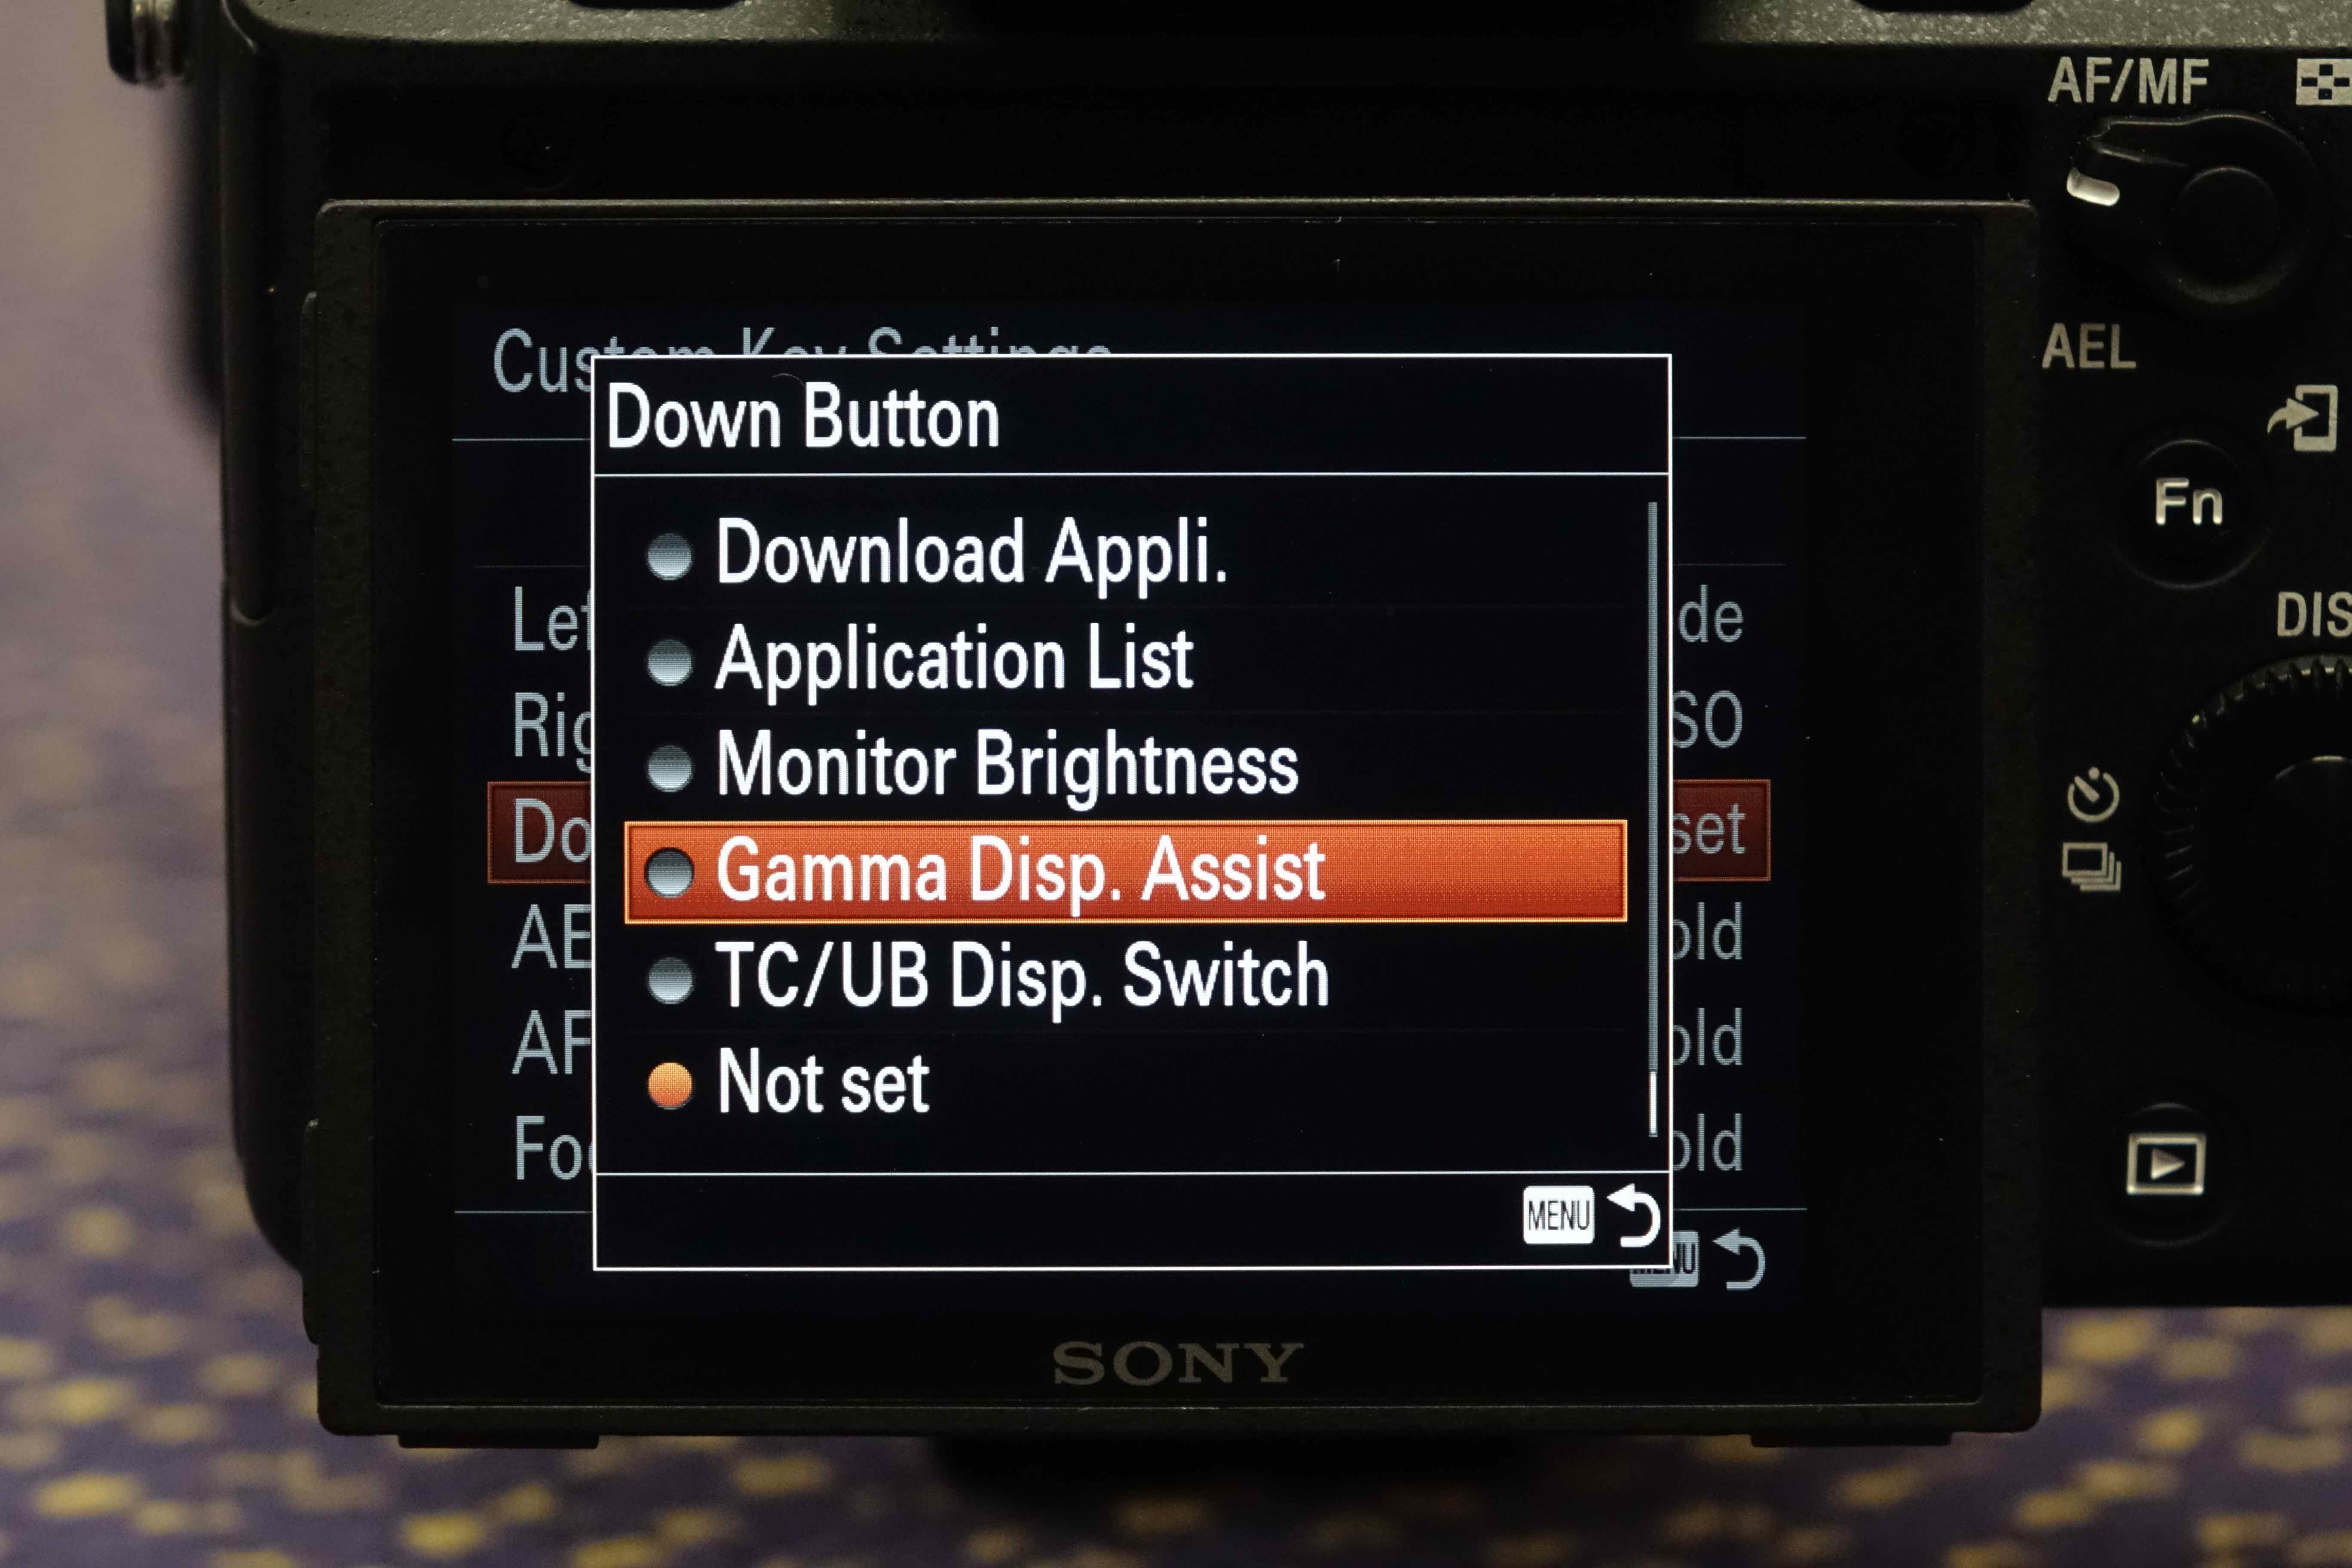 IBC 2015: A detailed look at the new Sony a7S II camera - Newsshooter